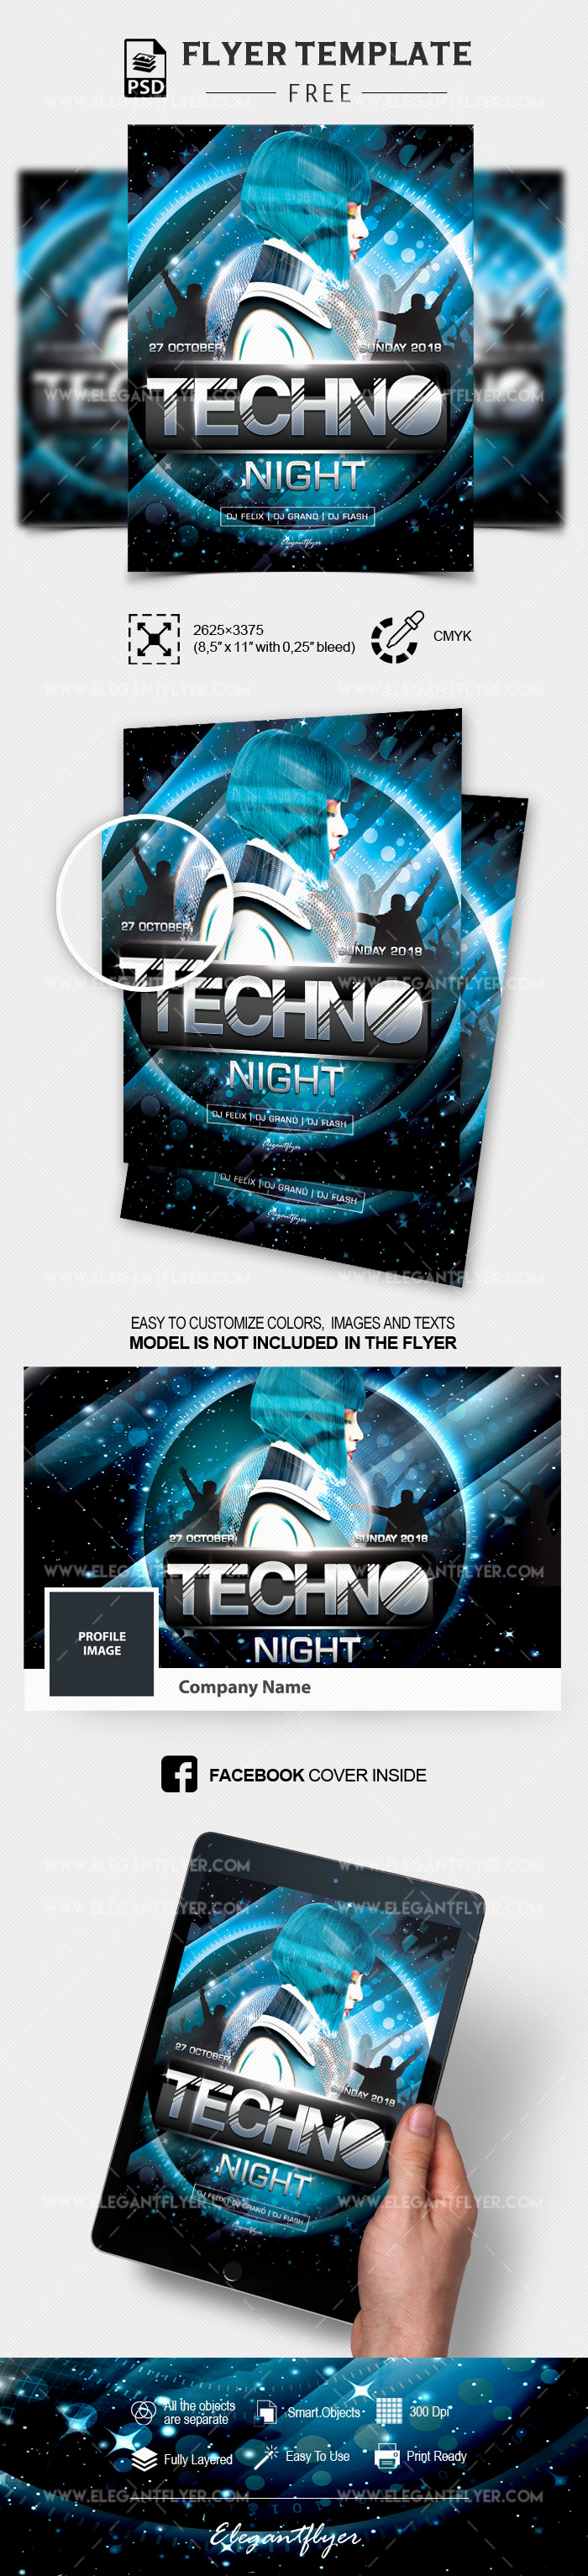 Techno Night  – Free PSD Flyer Template